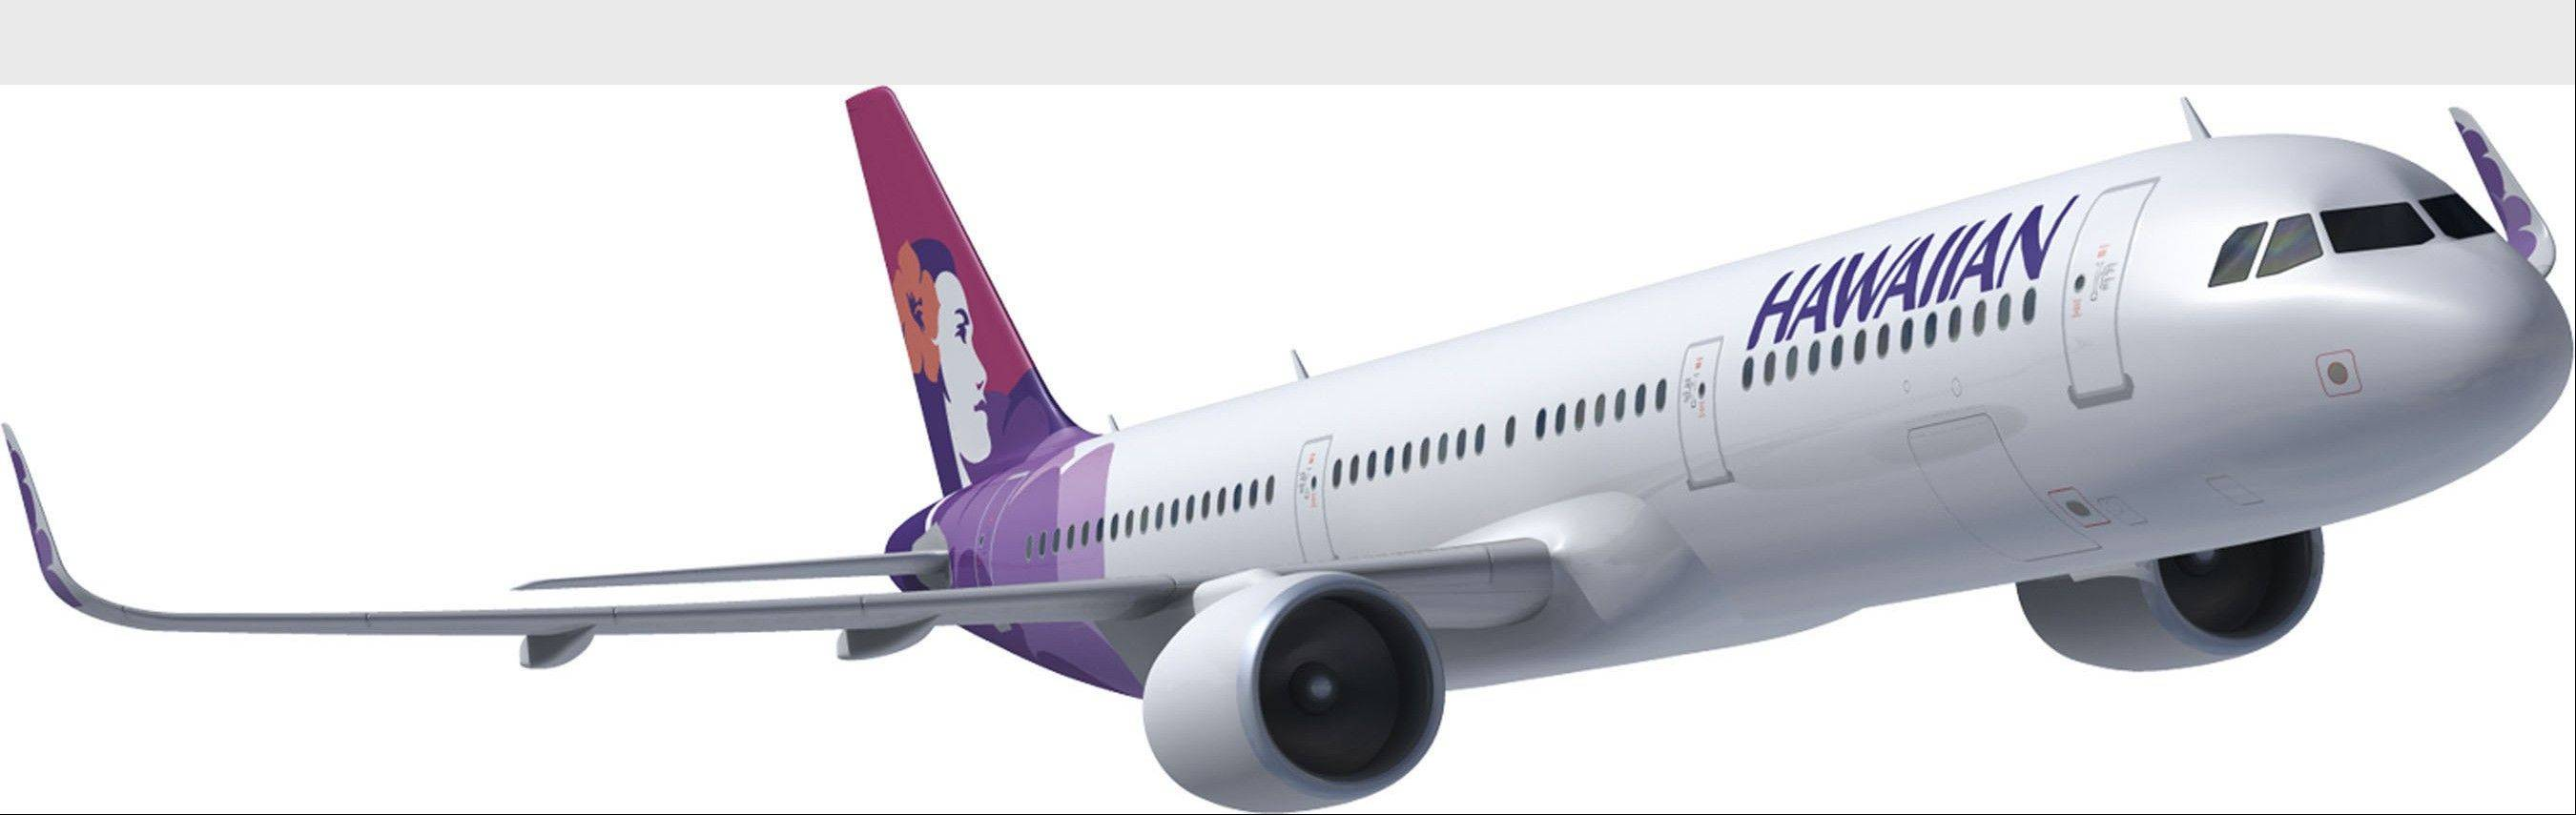 Hawaiian Airlines will begin taking delivery of 16 new Airbus A321neo aircraft starting in 2017.